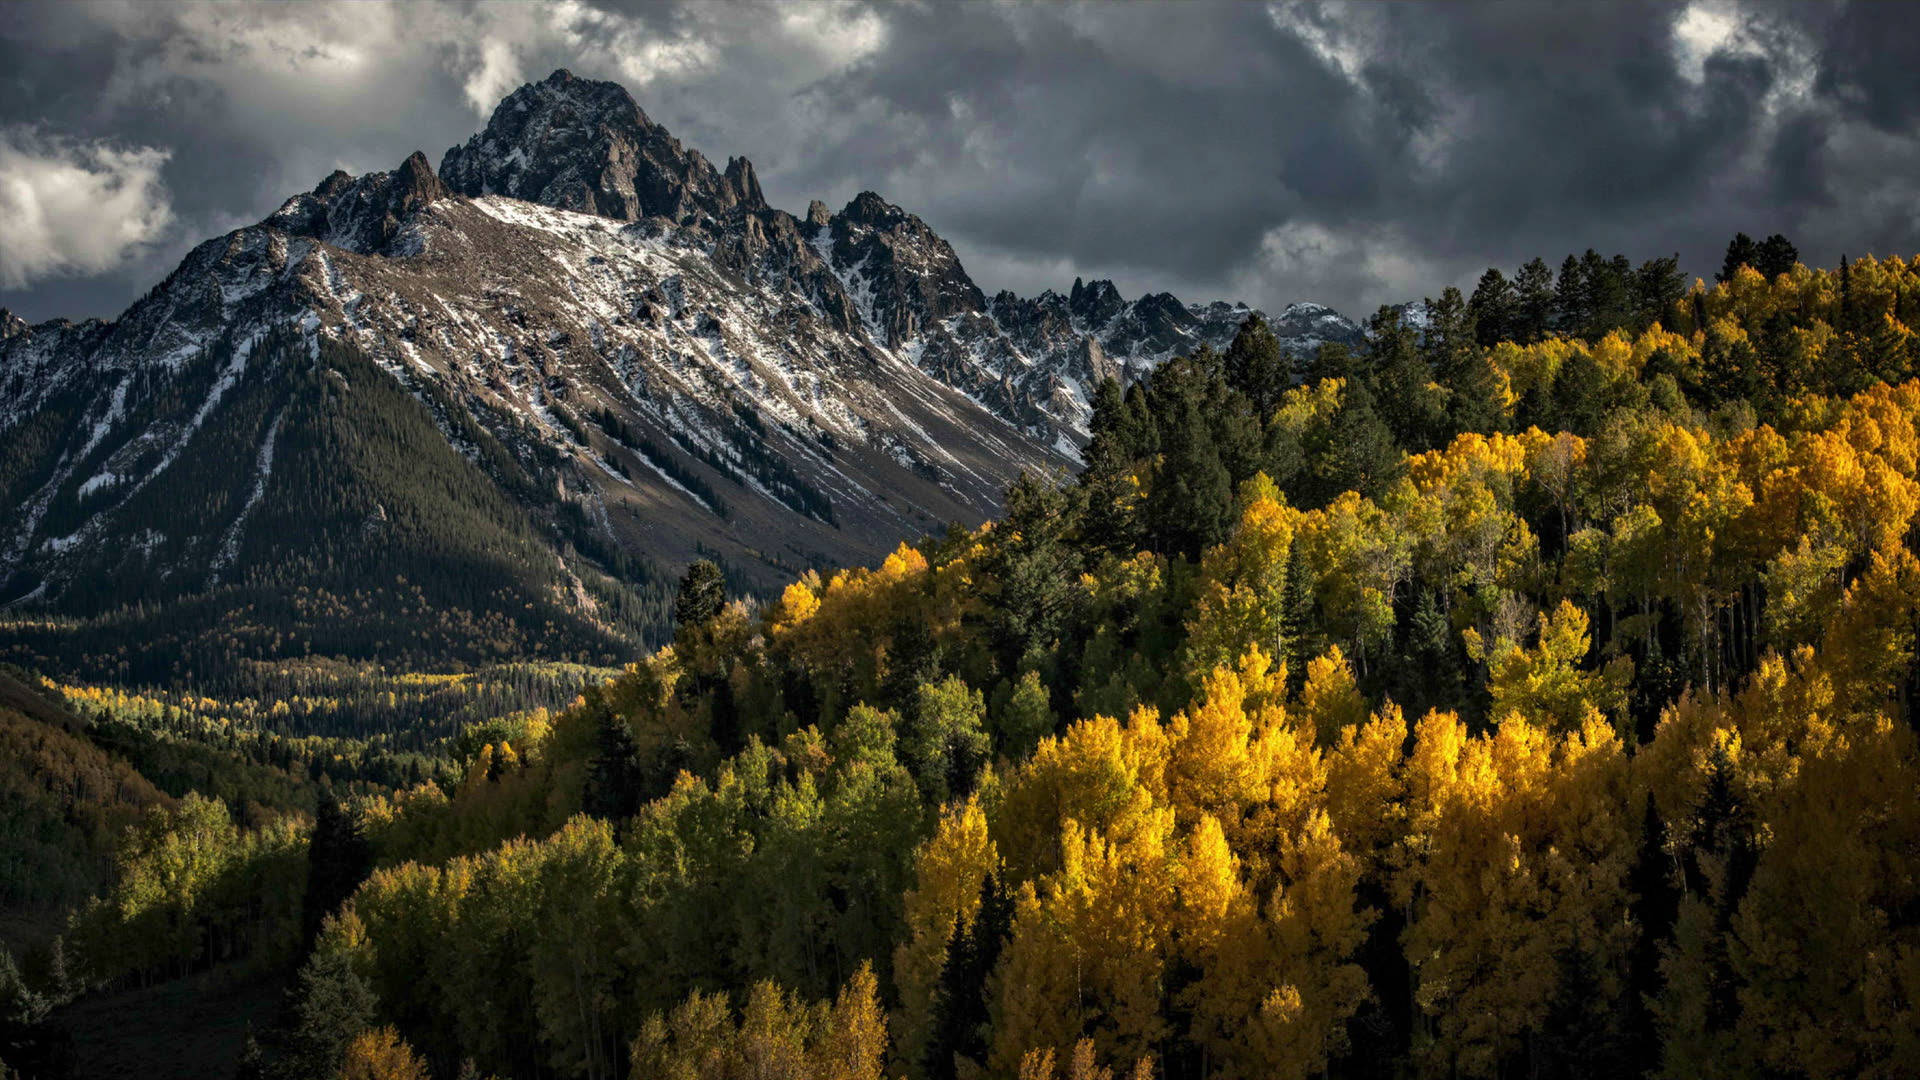 MattK_Composition-Tips-for-Shooting-Landscapes-Featured